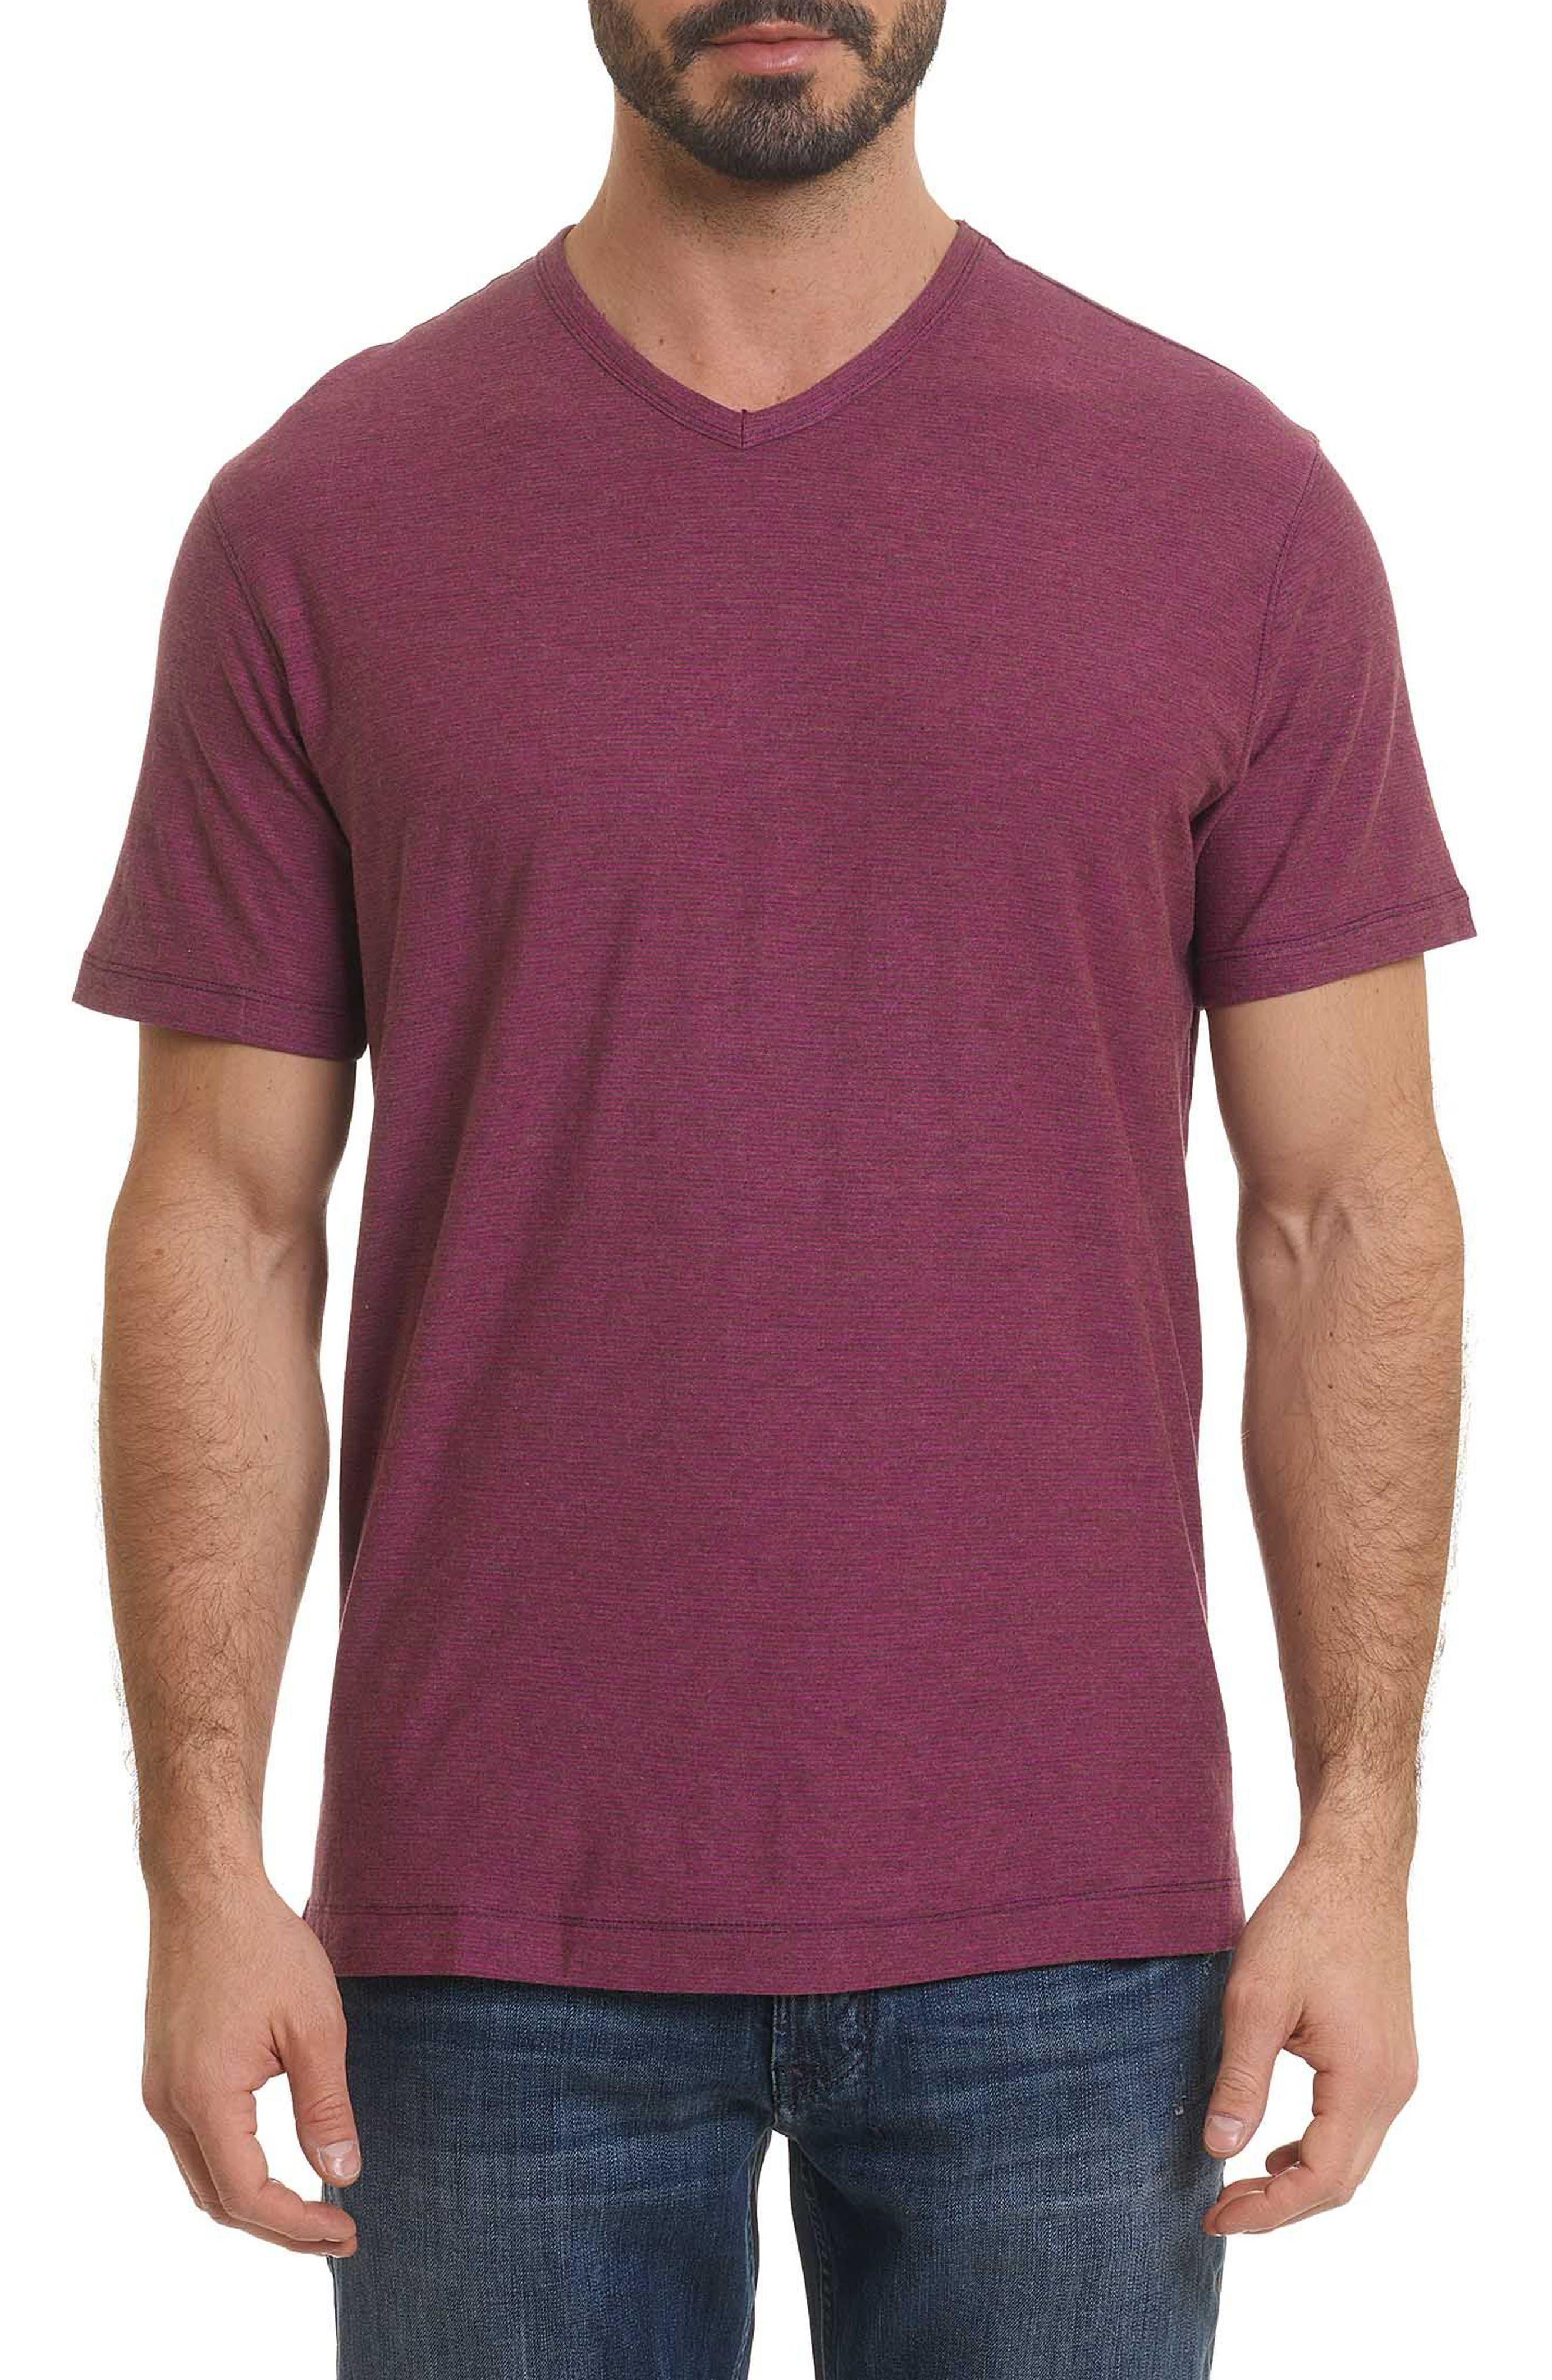 Orchidlands Stripe T-Shirt,                             Main thumbnail 1, color,                             HEATHER AMETHYST